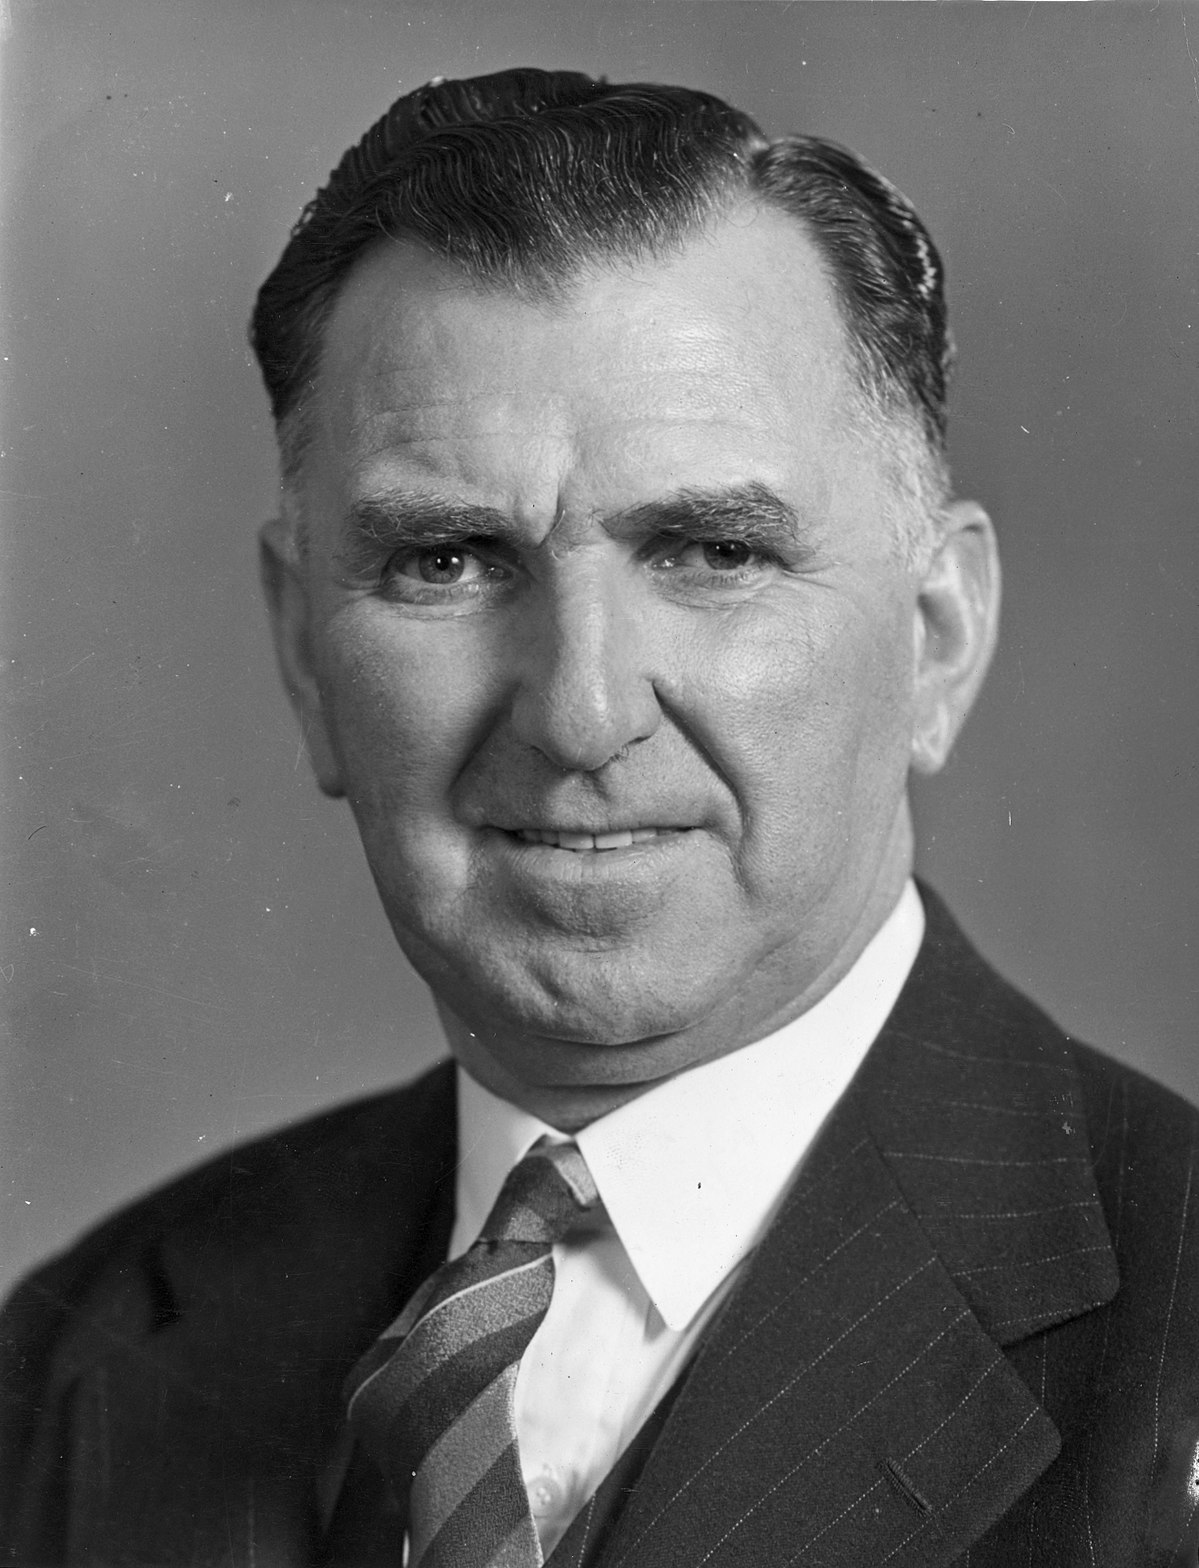 New zealand general election 1951 wikipedia for Bunny williams wikipedia